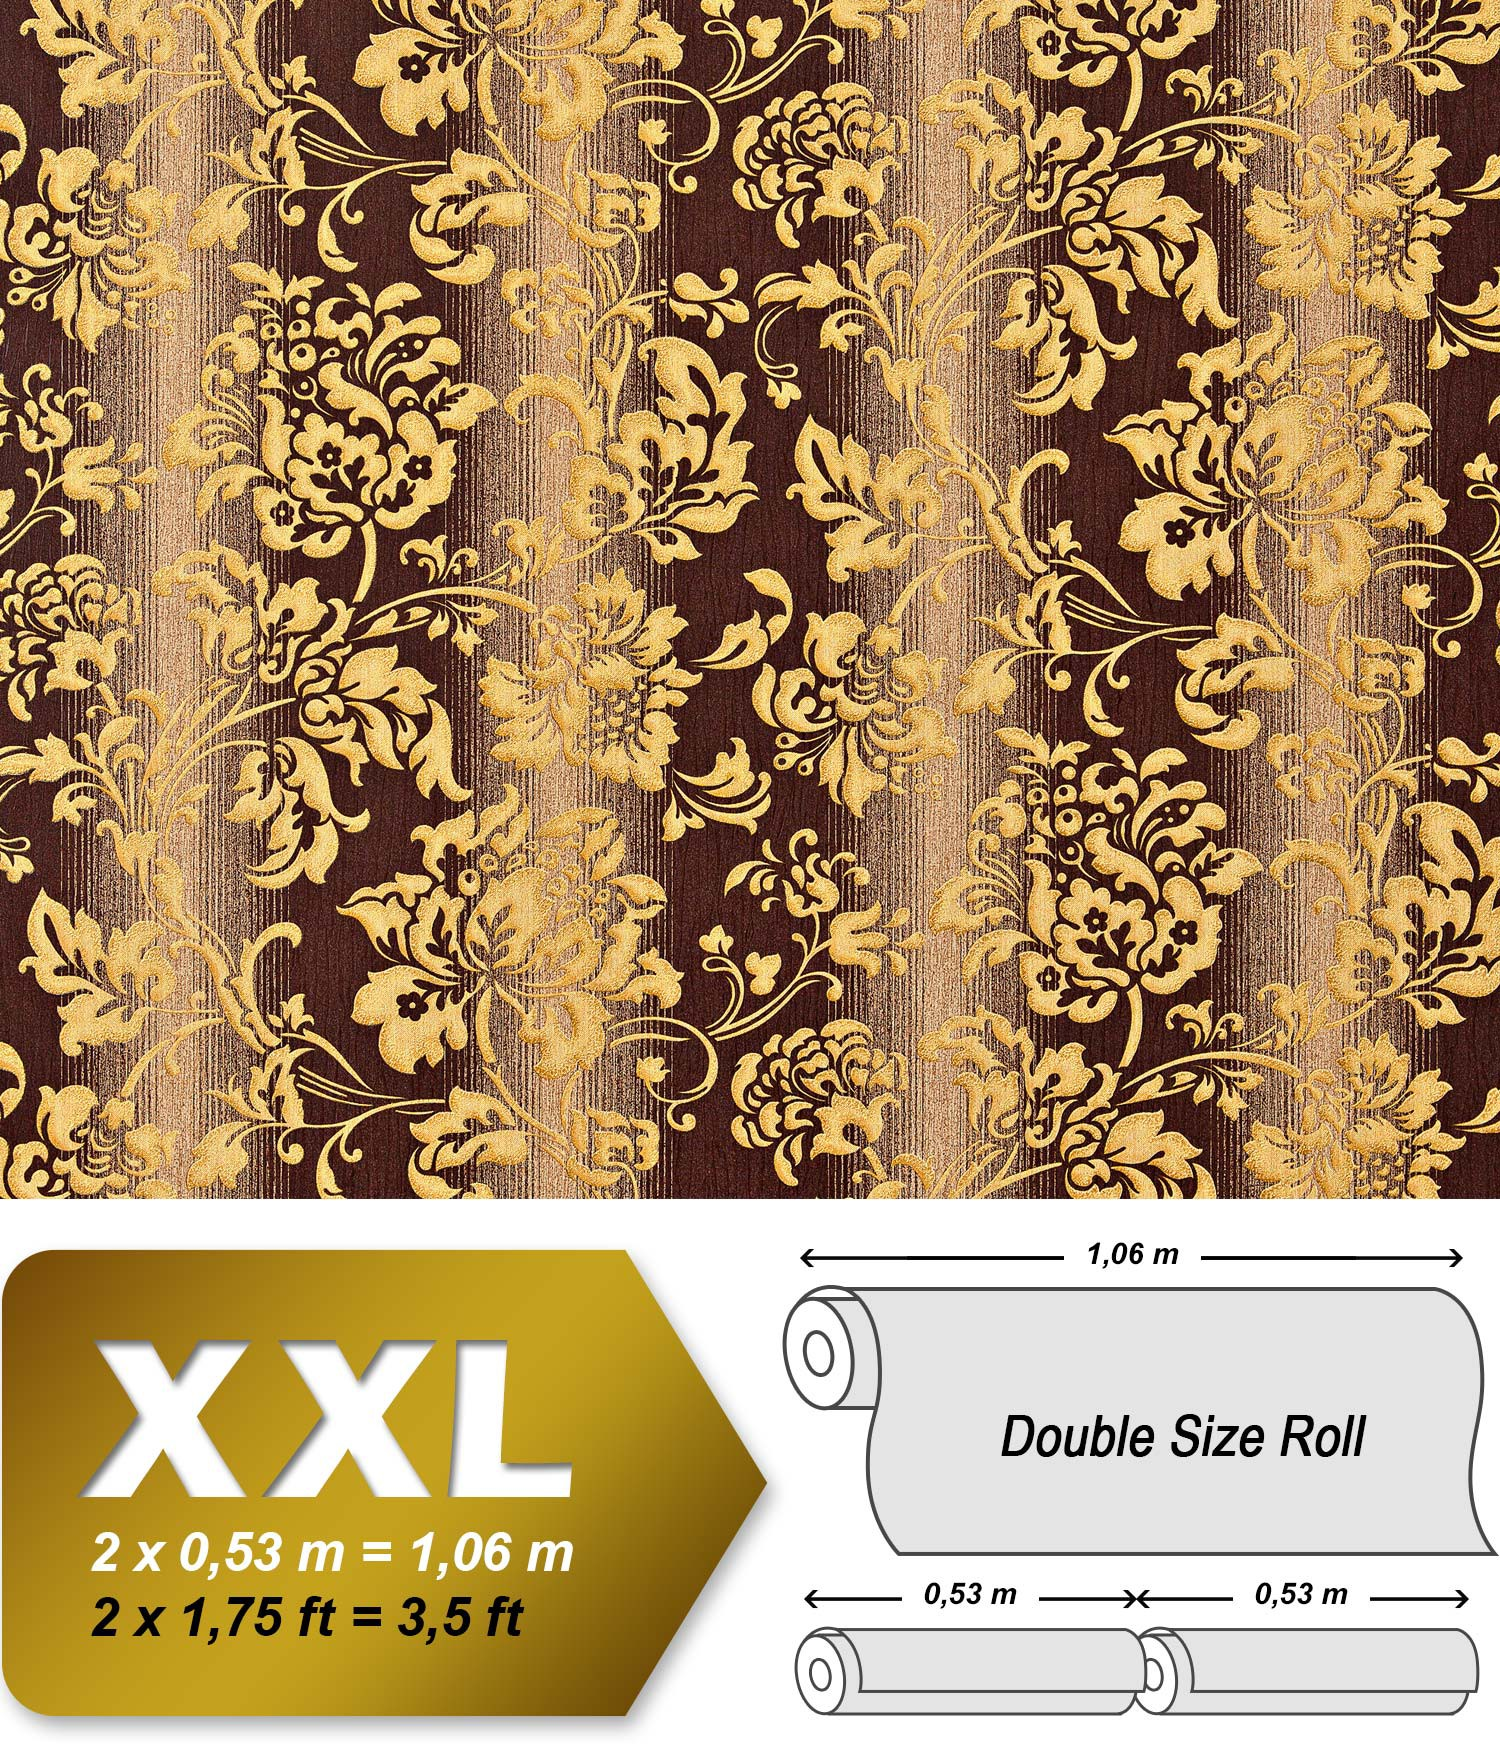 papier peint fleurs xxl de luxe intiss edem 921 36 dessin baroque floral de haute qualit. Black Bedroom Furniture Sets. Home Design Ideas